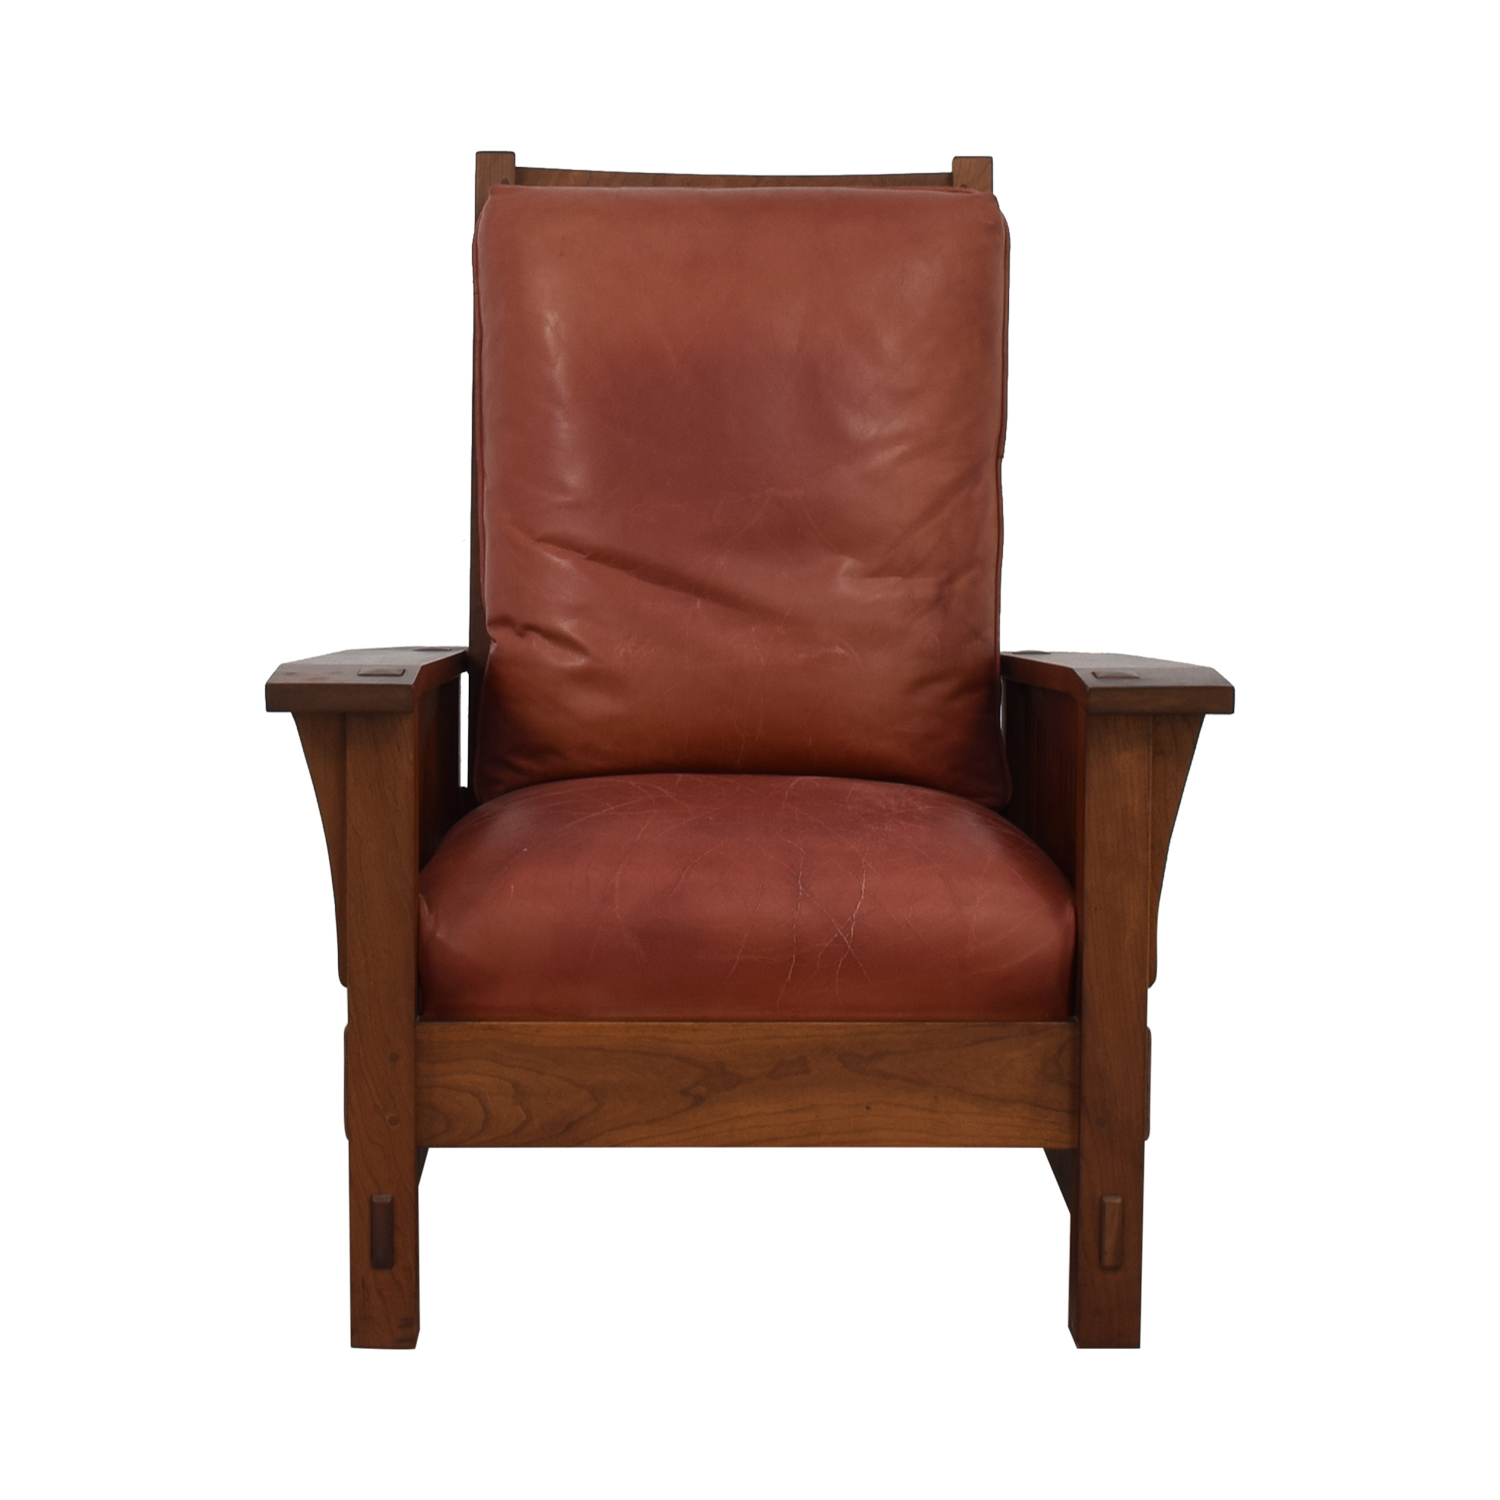 Stickley Furniture Spindle Morris Chair Online